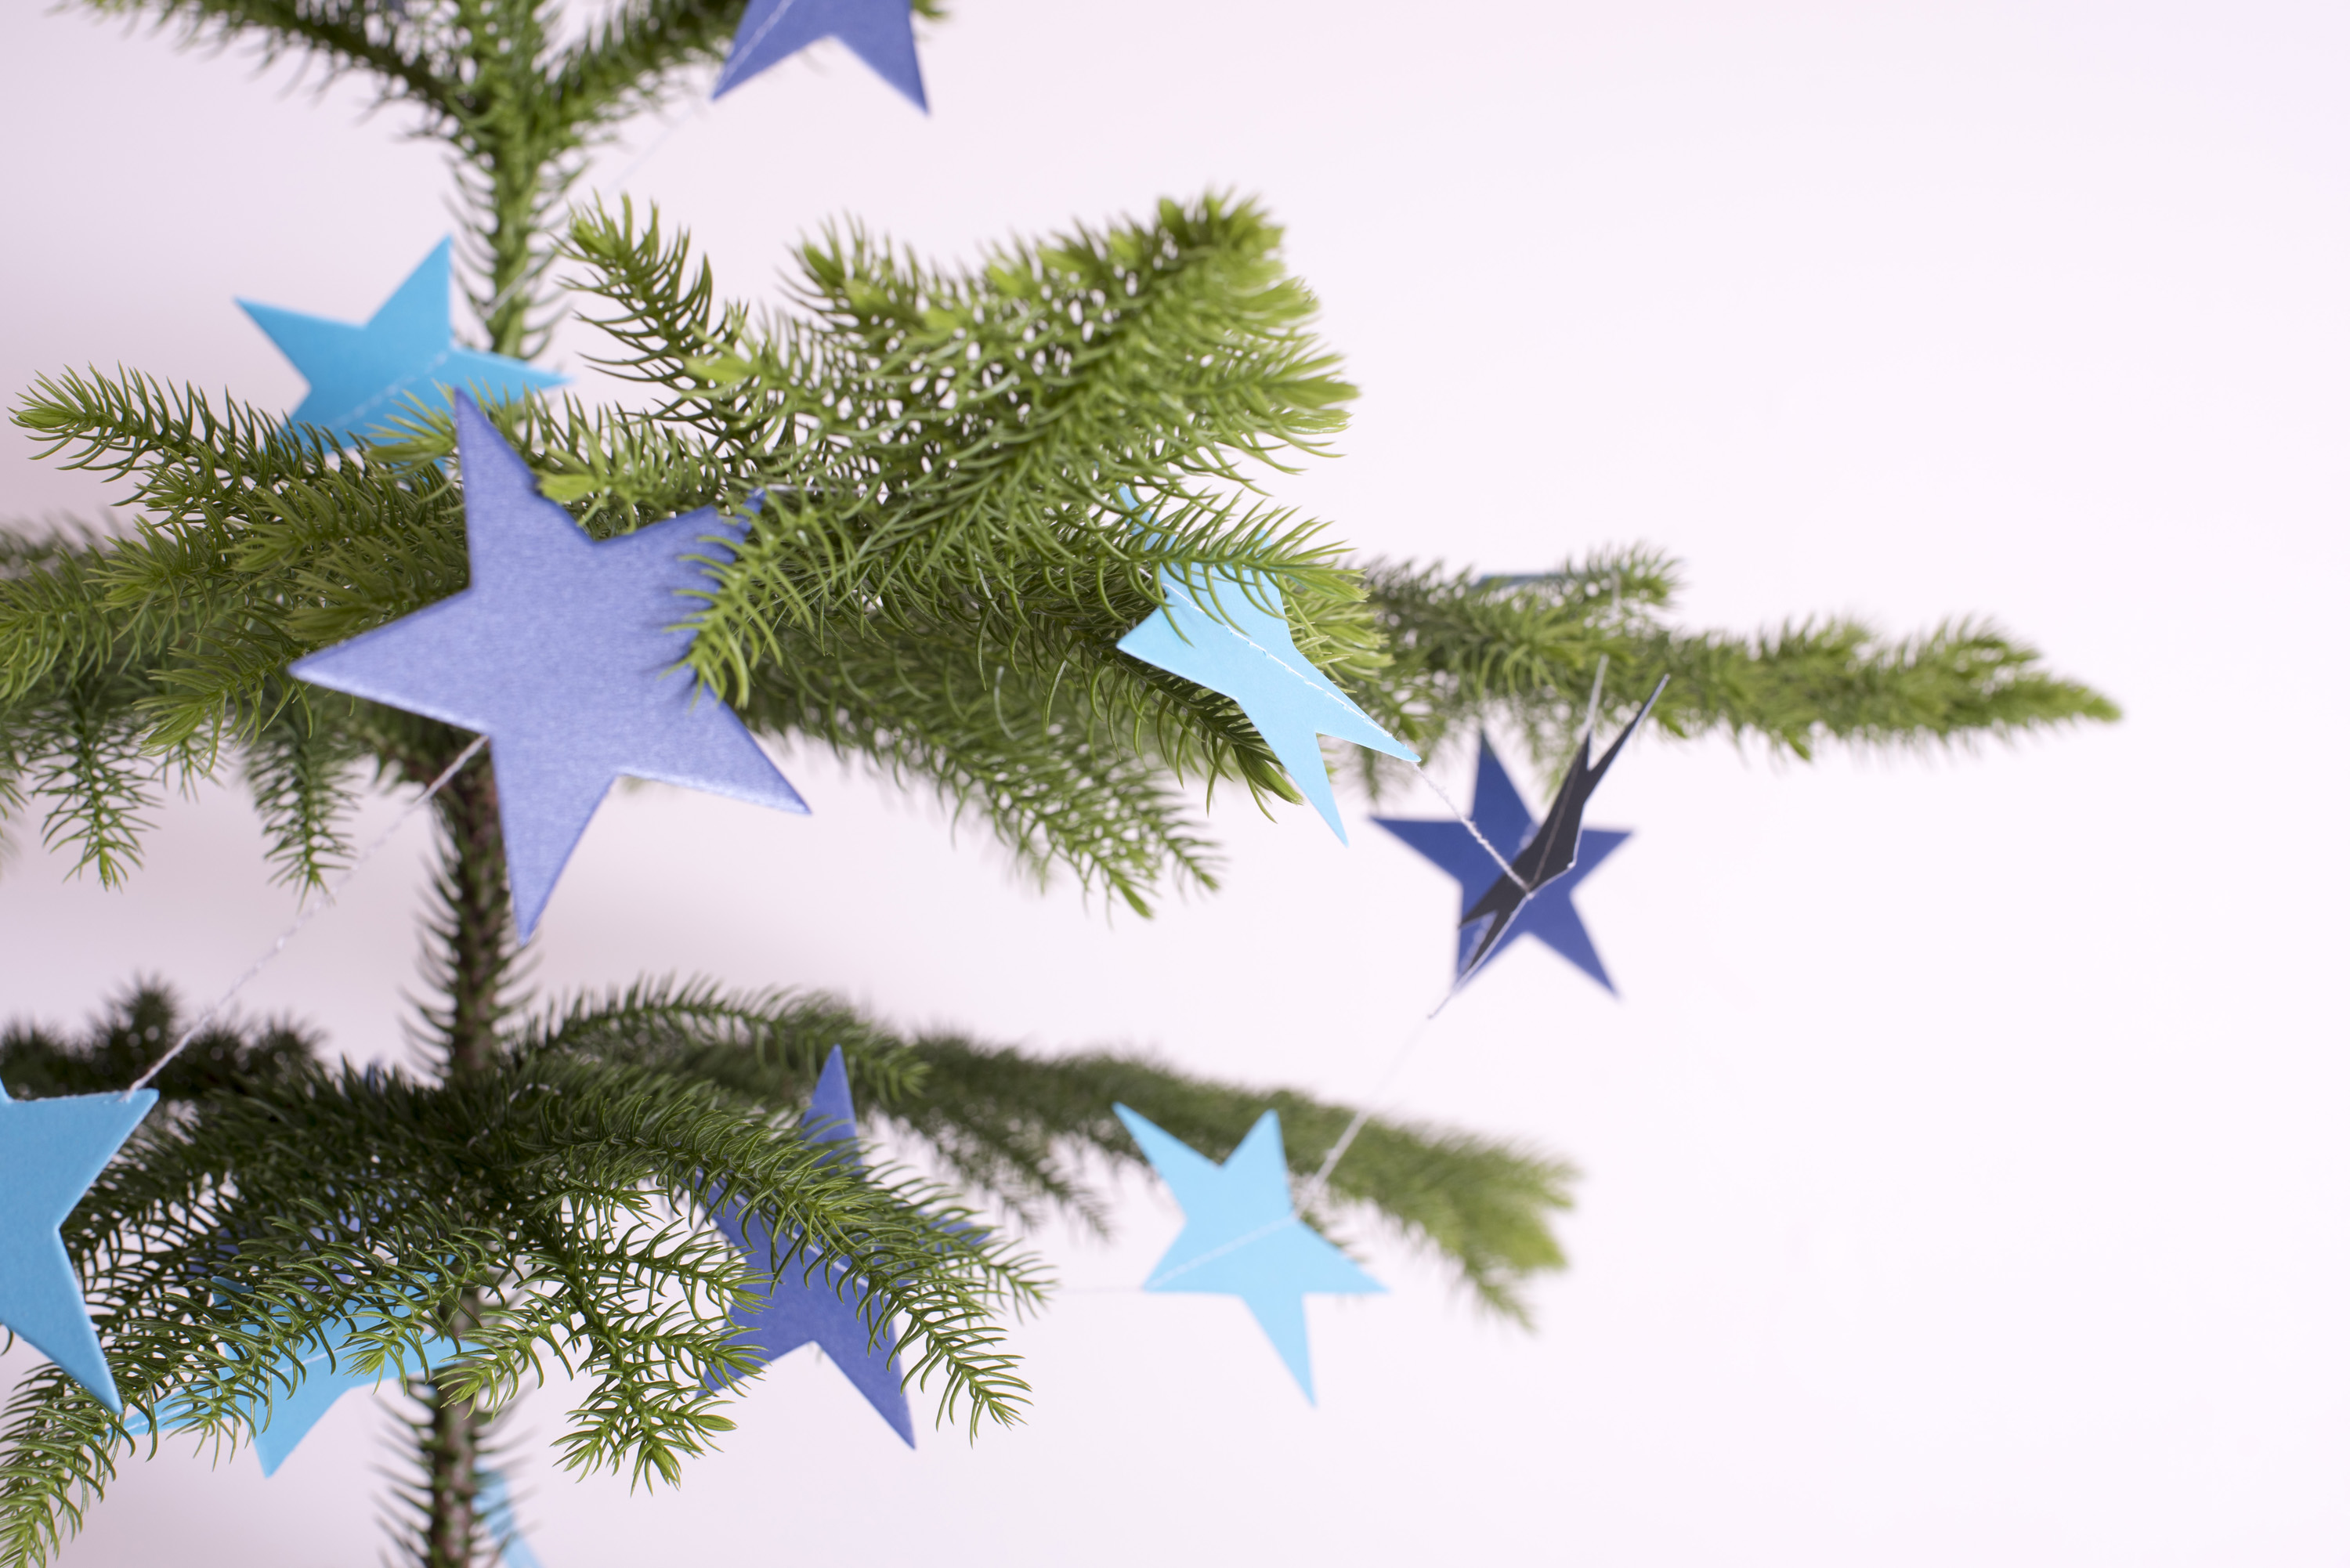 Close up Christmas tree branch with blue star shaped decorations.